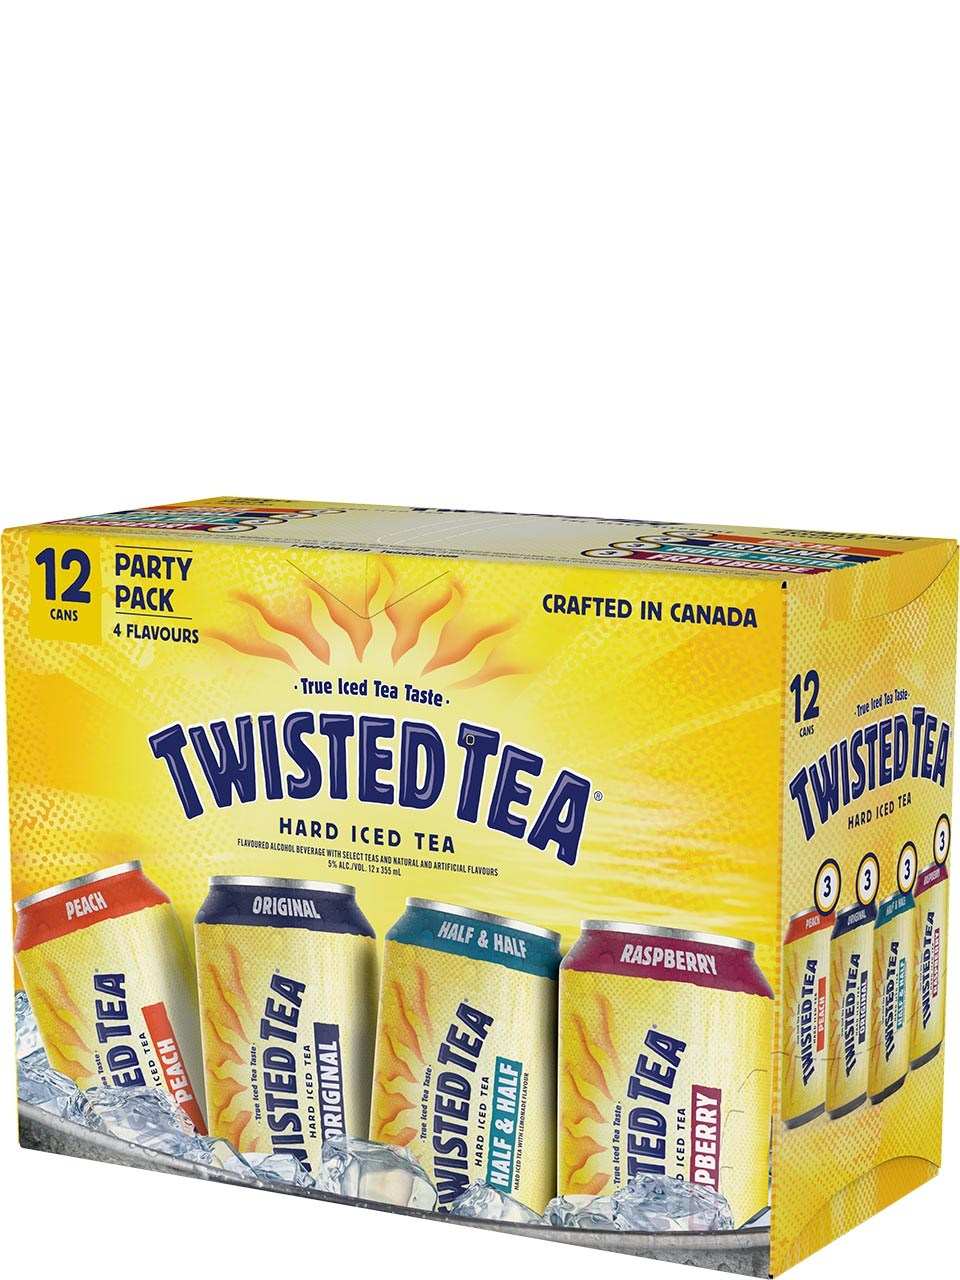 TWISTED TEA PARTY PACK 4260ml